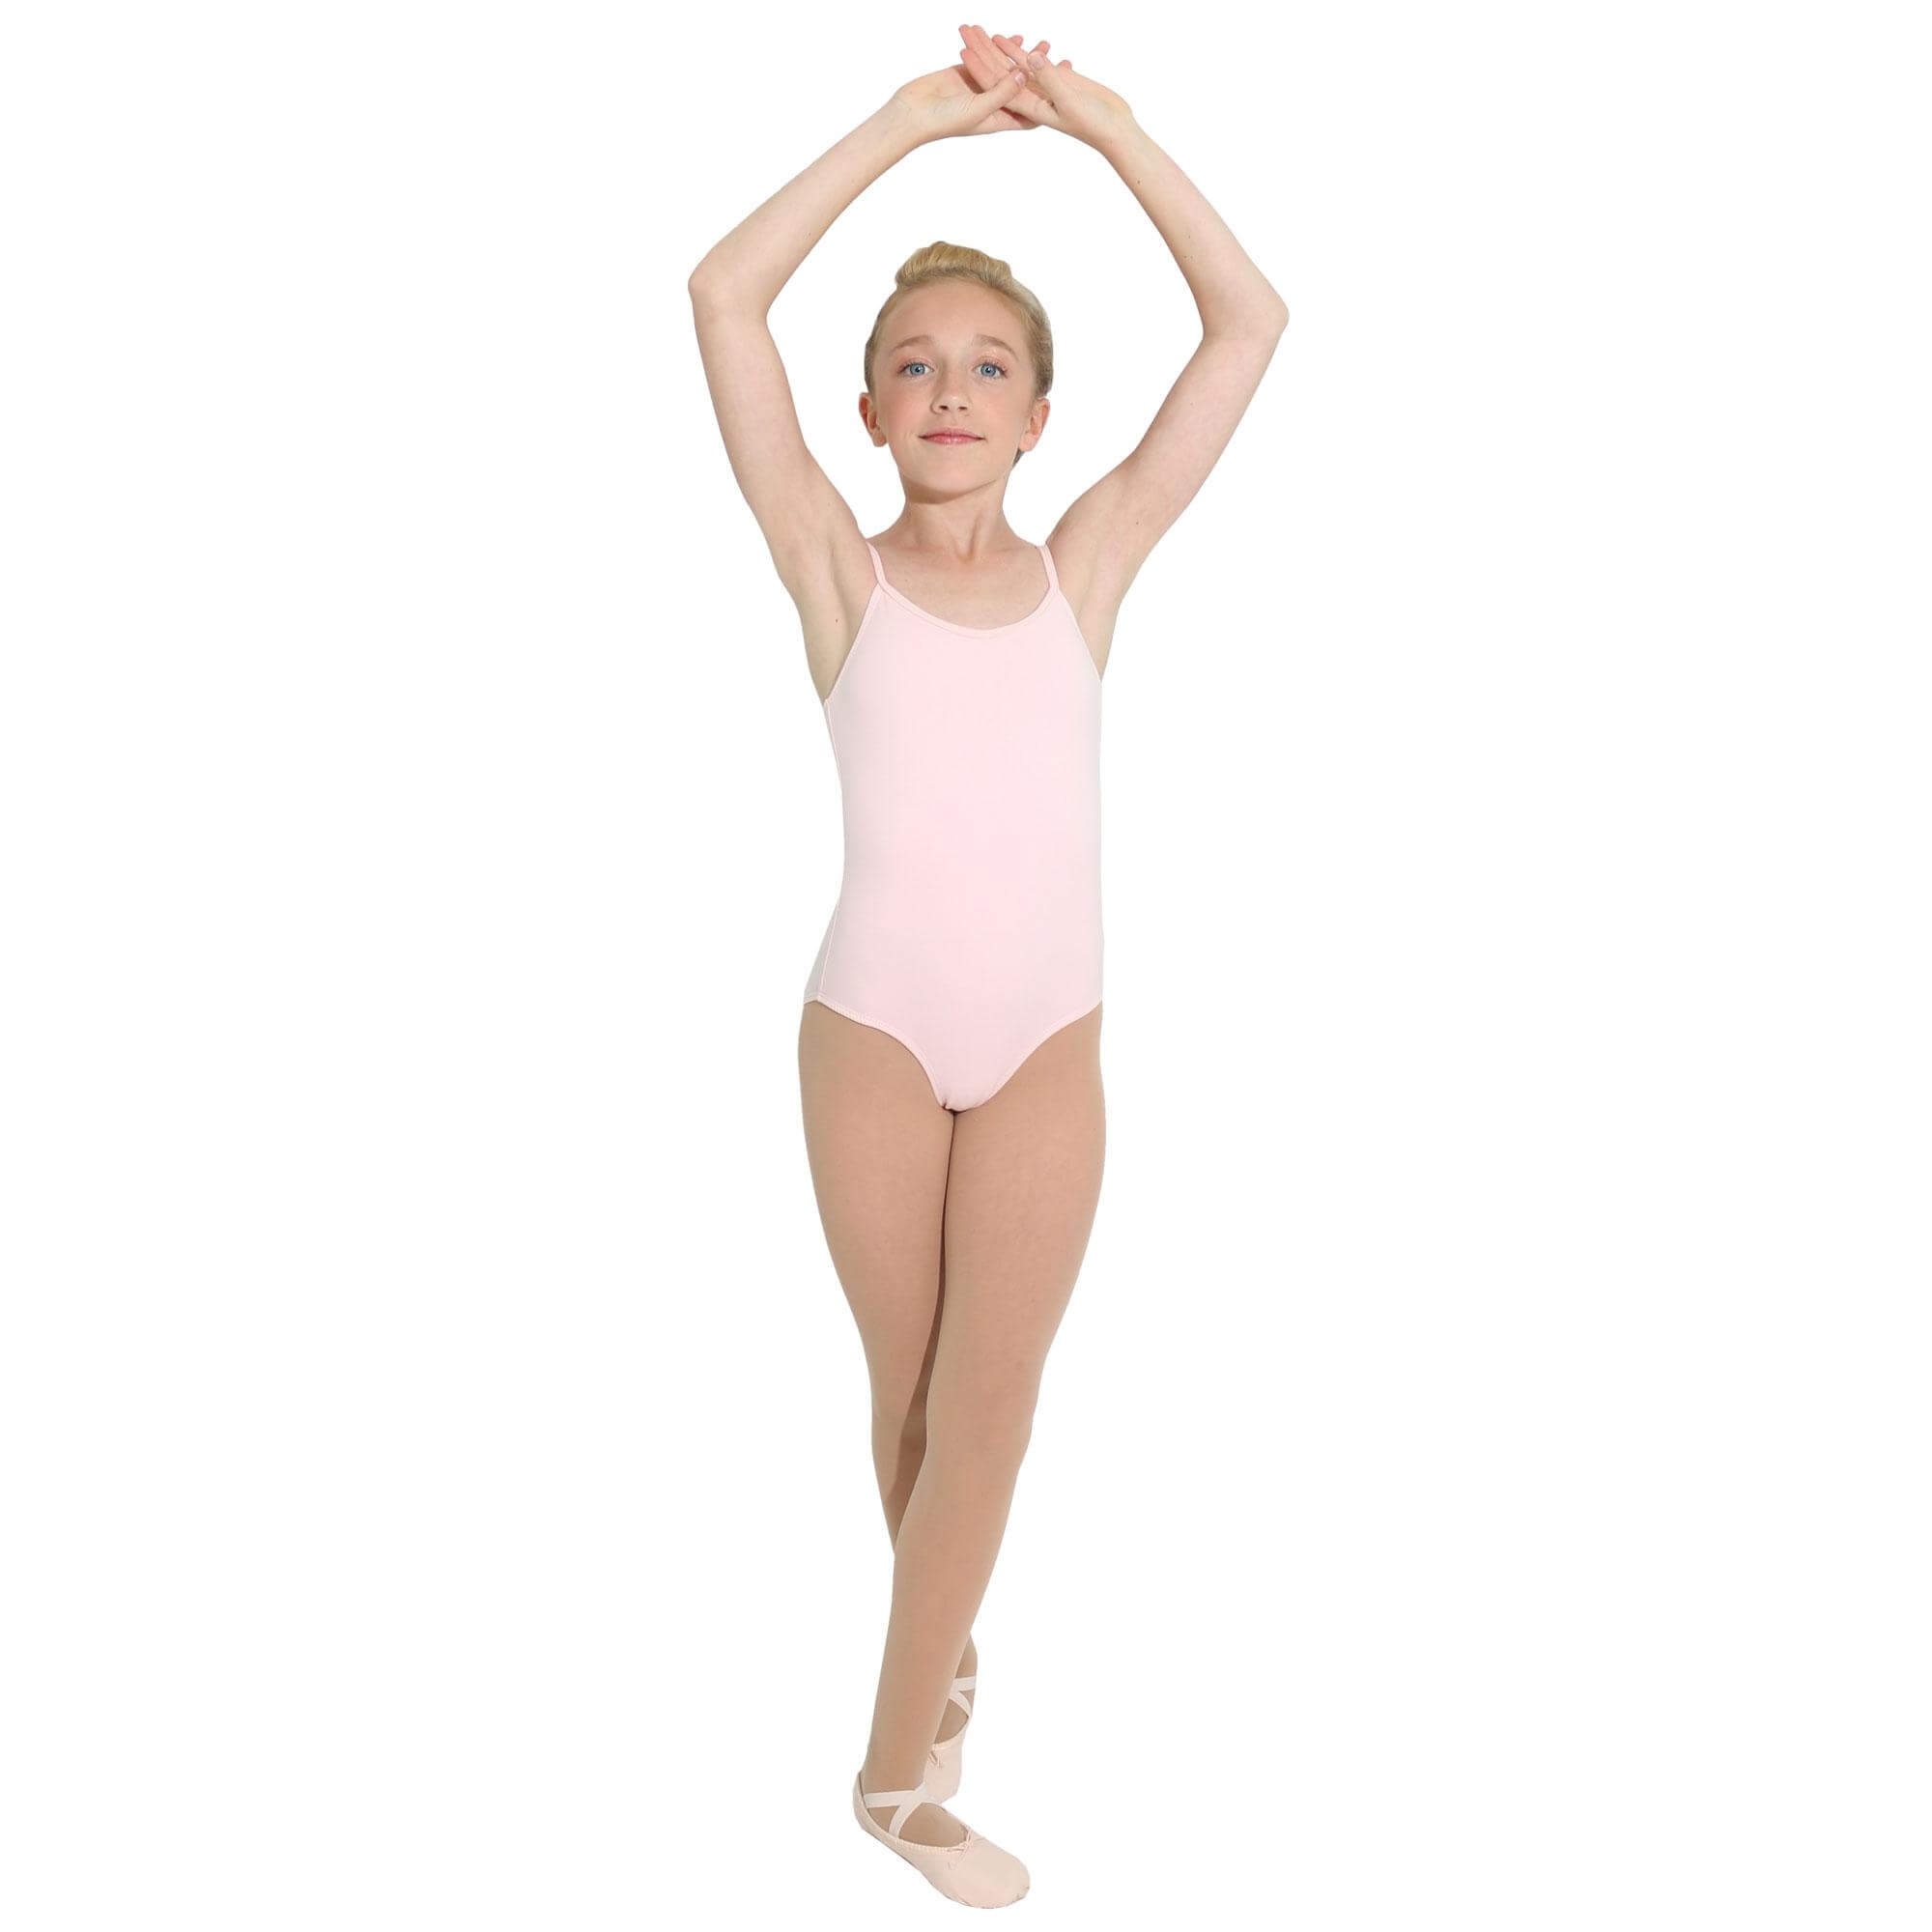 danzcue child ballet cotton camisole leotard